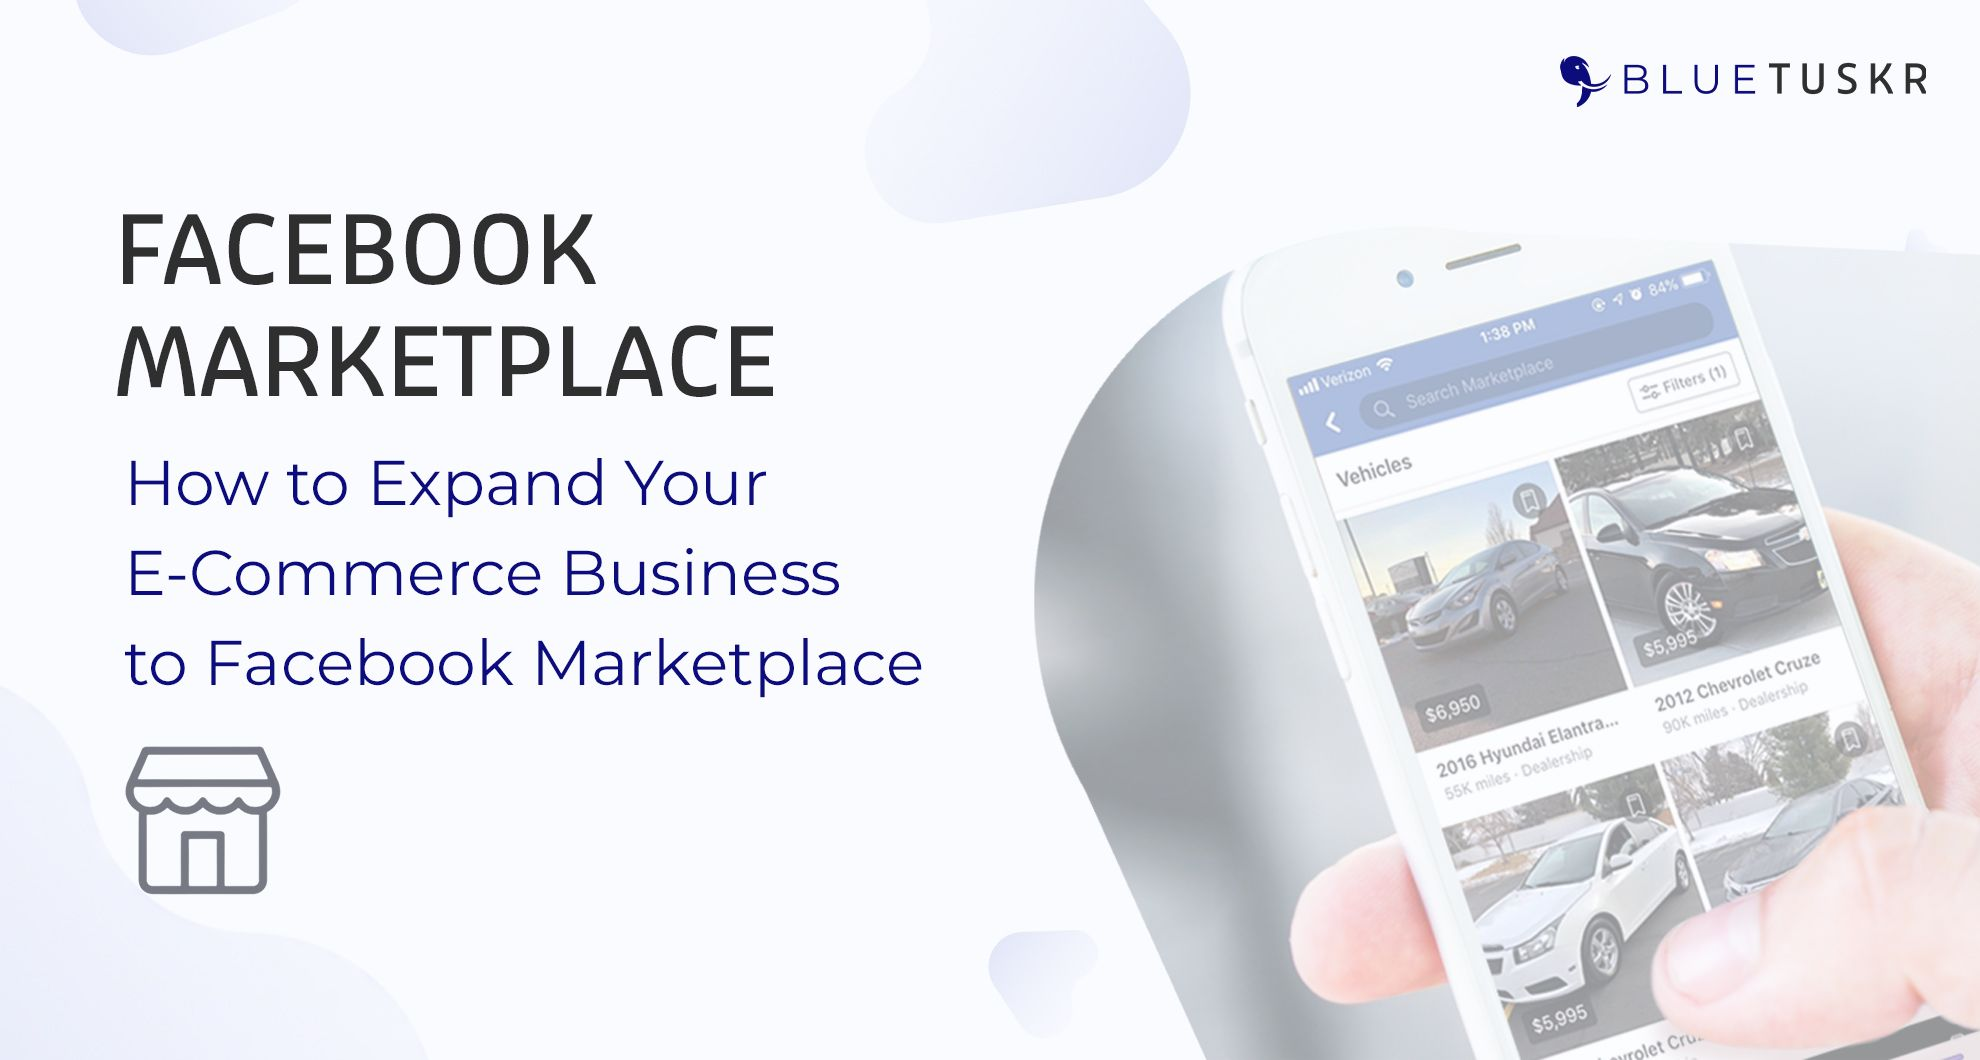 How to Expand Your E-Commerce Business to Facebook Marketplace